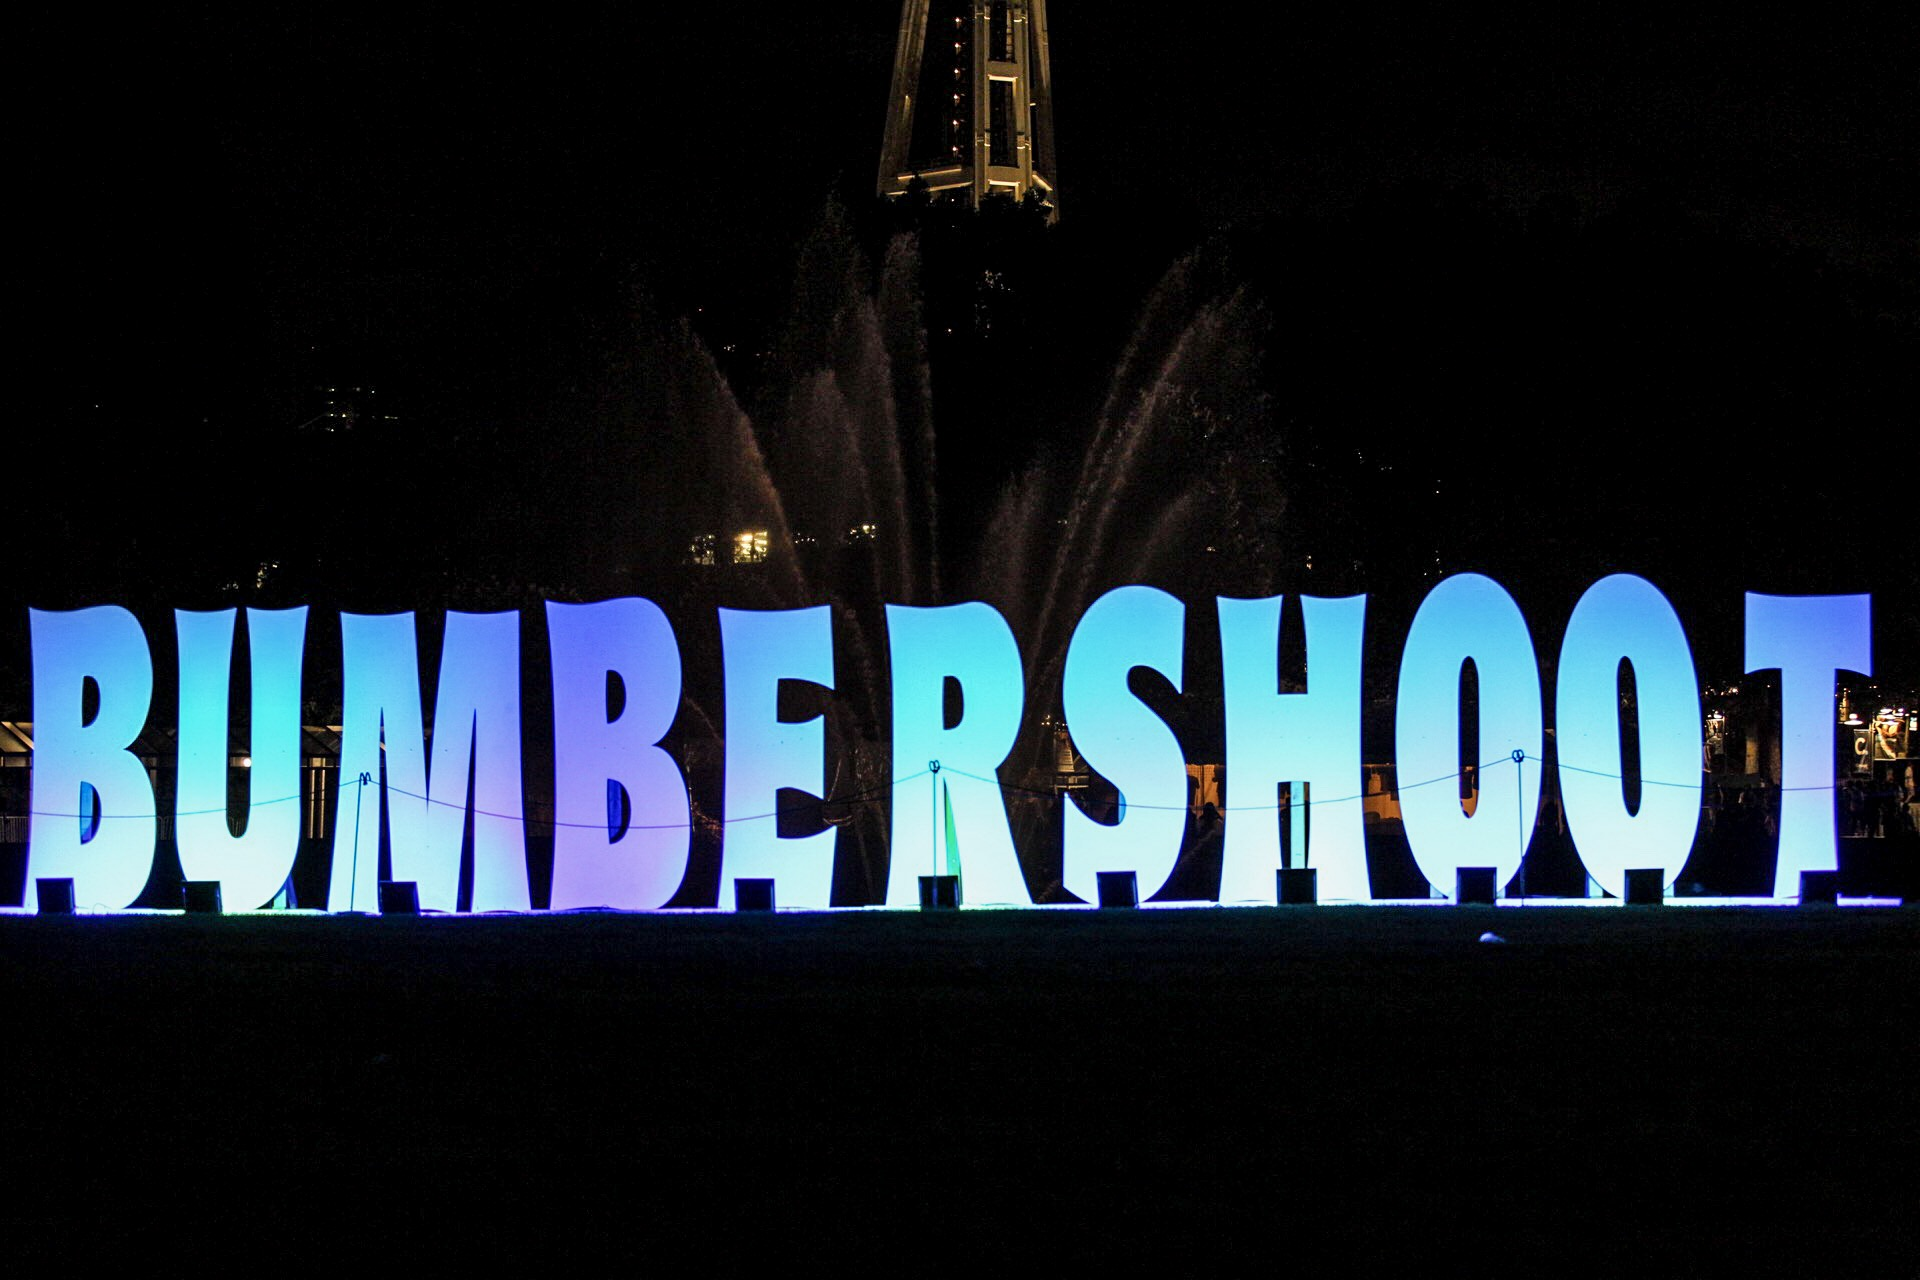 Bumbershoot is back for another year in Seattle as thousands of people flocked to the Seattle Center to see big headliners such as Lizzo, Tyler the Creator and The Lumineers. The three day festival happens every year over Labor Day Weekend, at Seattle Center. Hundreds flock to see performances of all kinds in the heart of the city. (Image: Stephanie Dore / Seattle Refined)